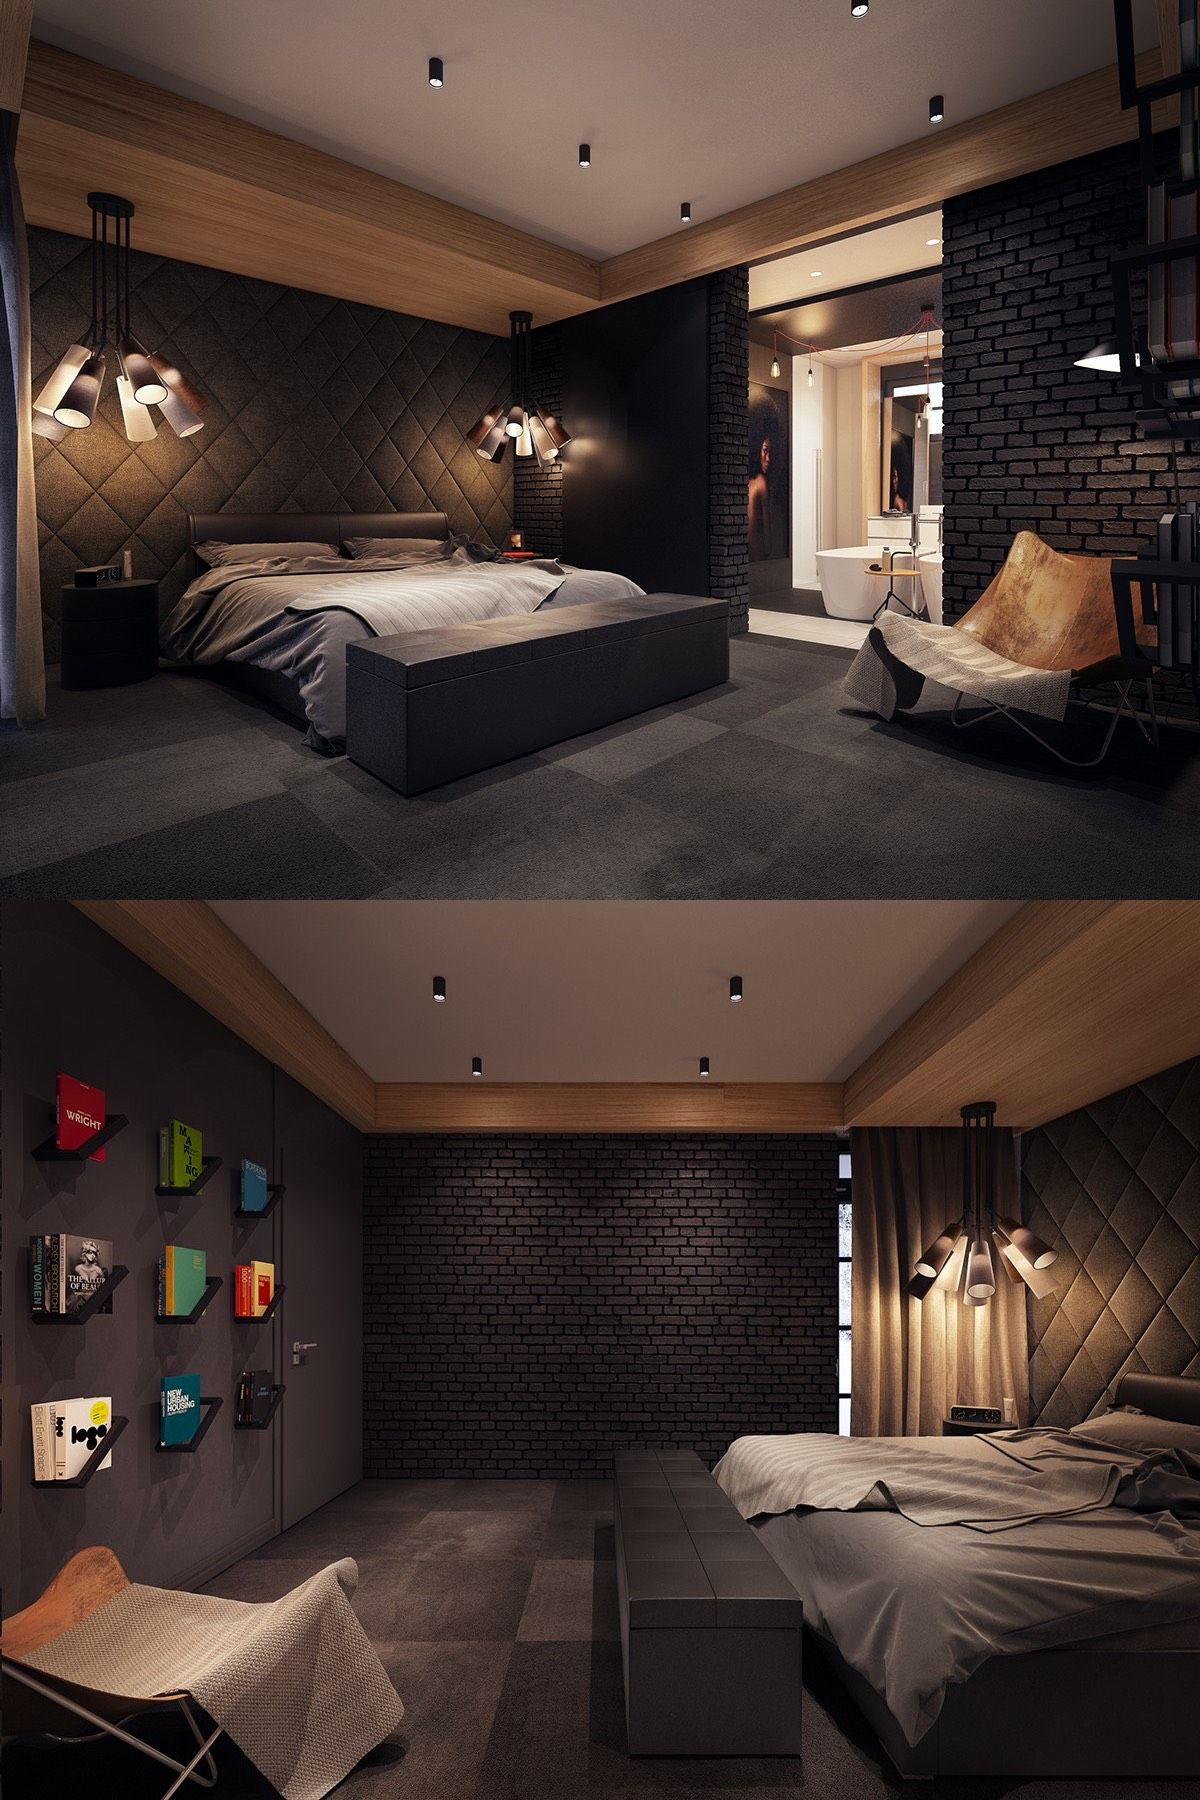 Modern bedroom renovation - ideas that inspire